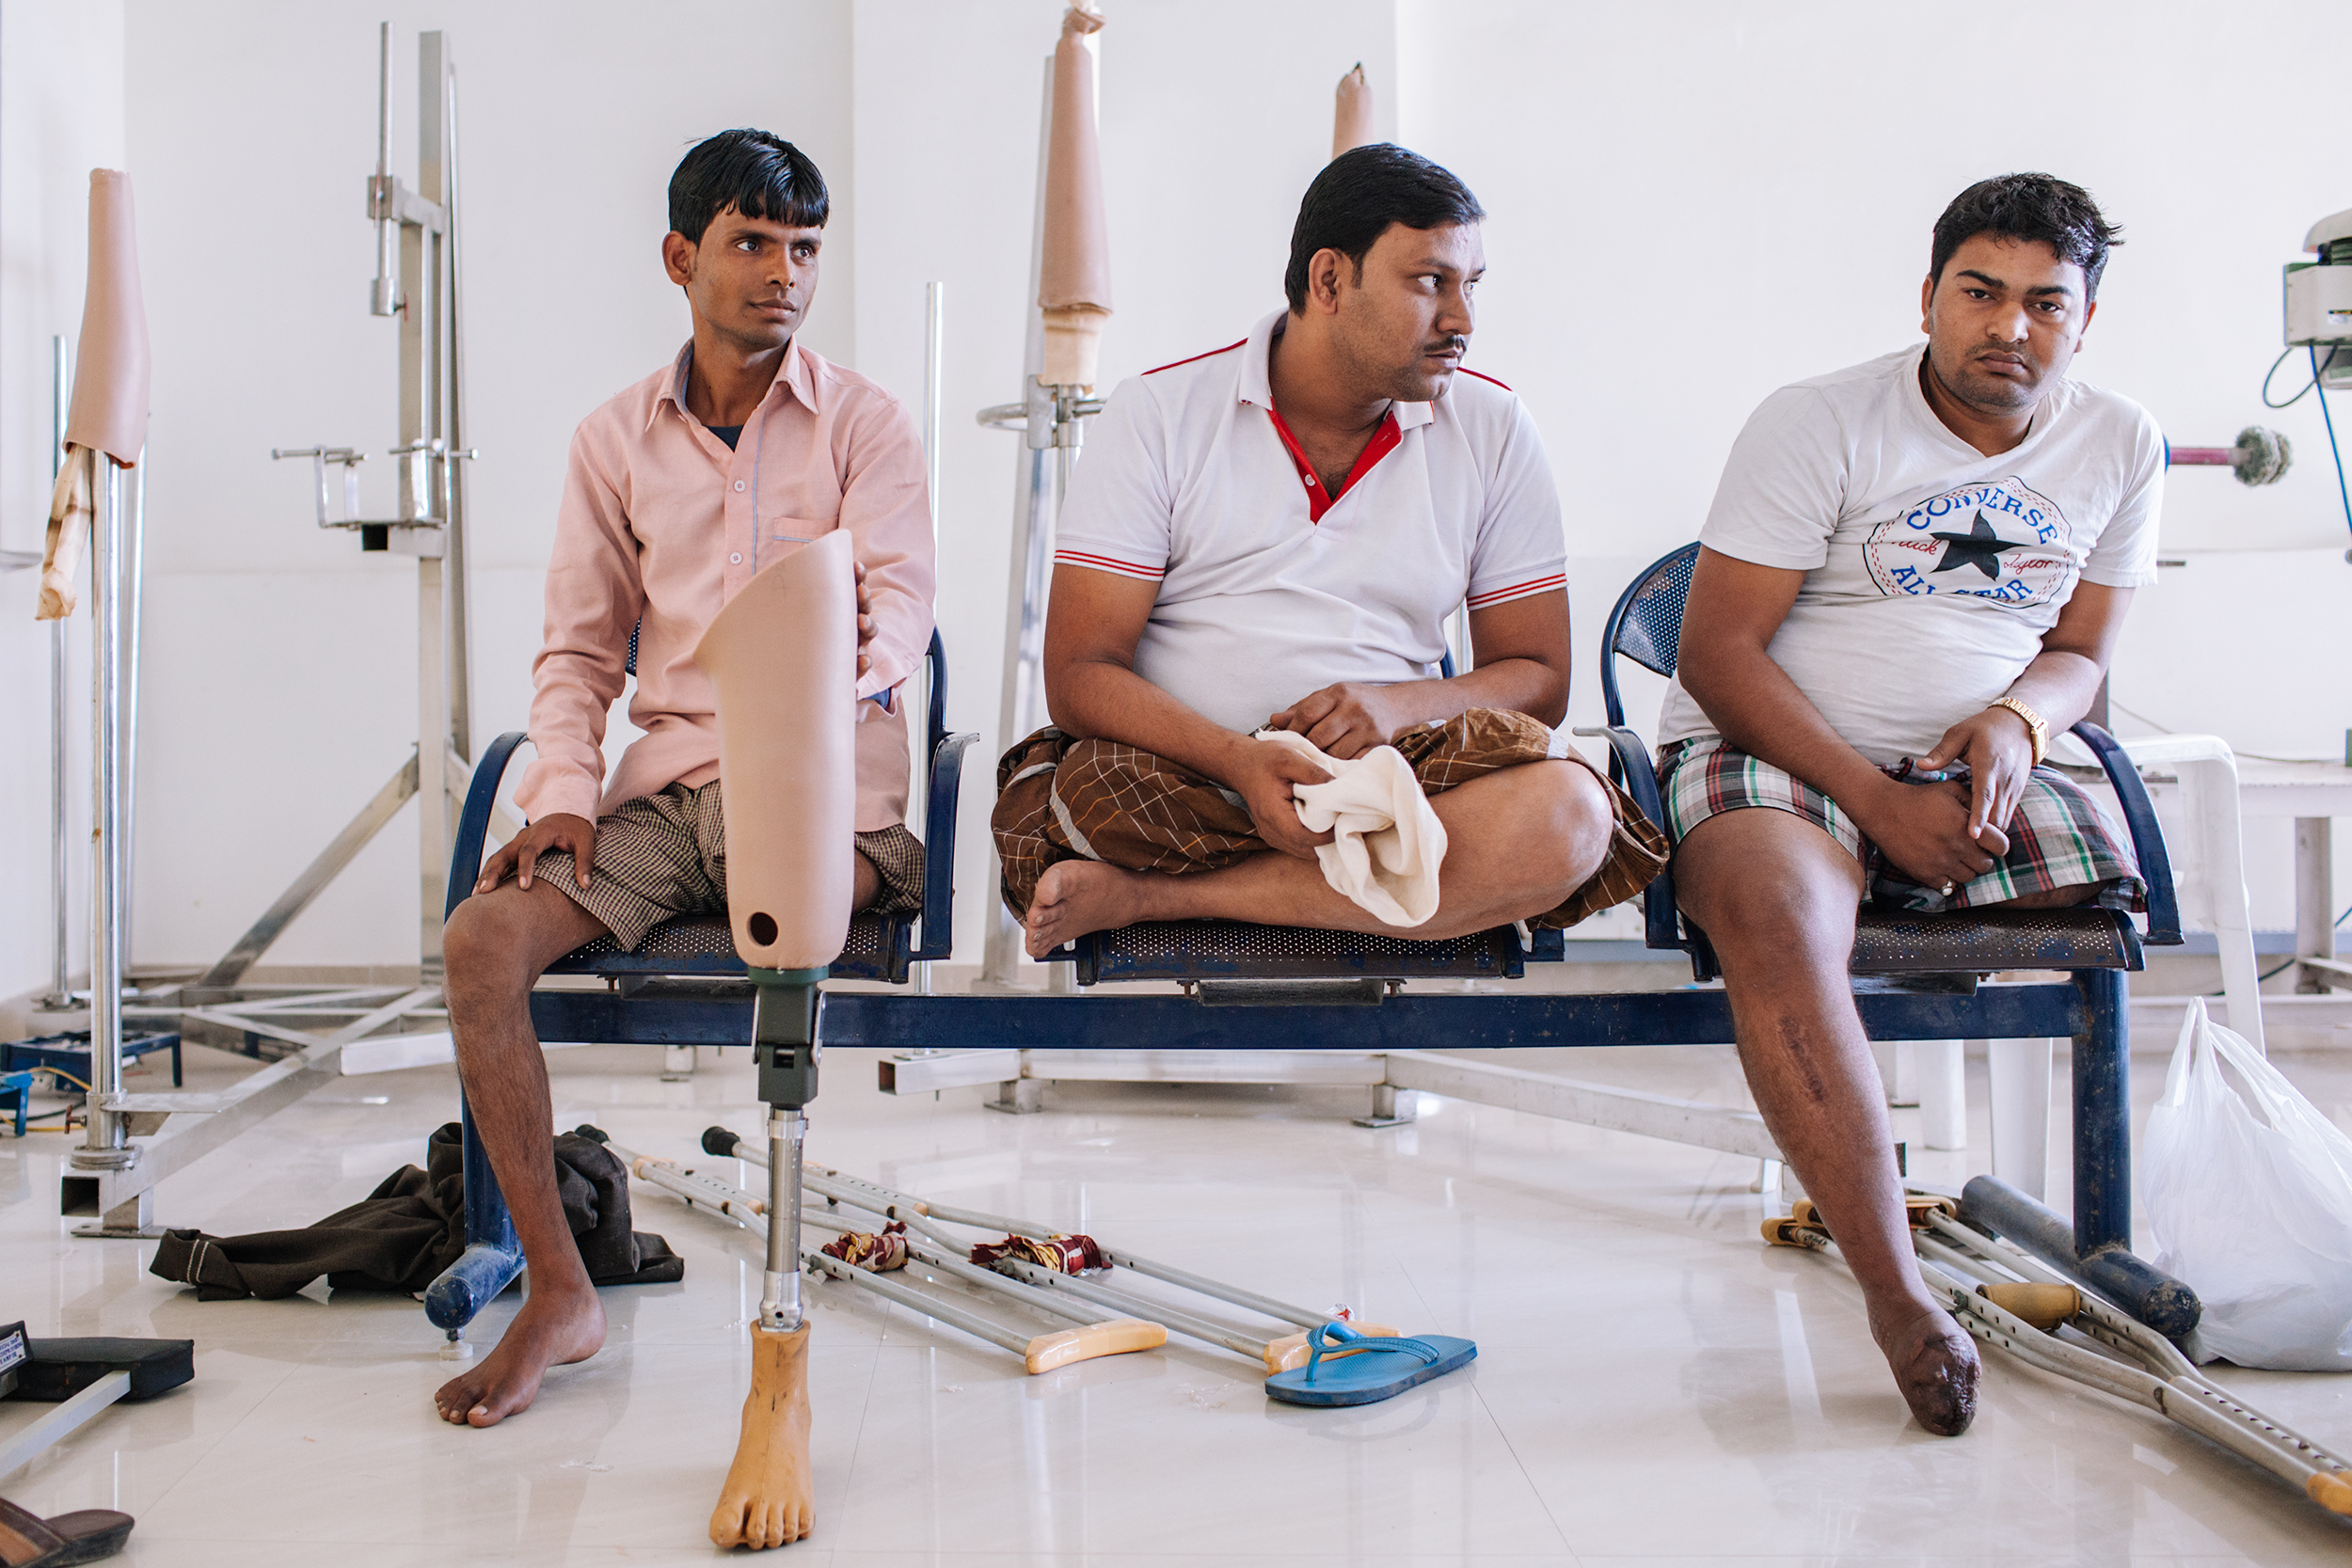 Patients wait for the measurements. BMVSS sees more cases as a result of accidents than illnesses. The organization provides artificial limbs, calipers, physical aids and assistance completely free of charge.